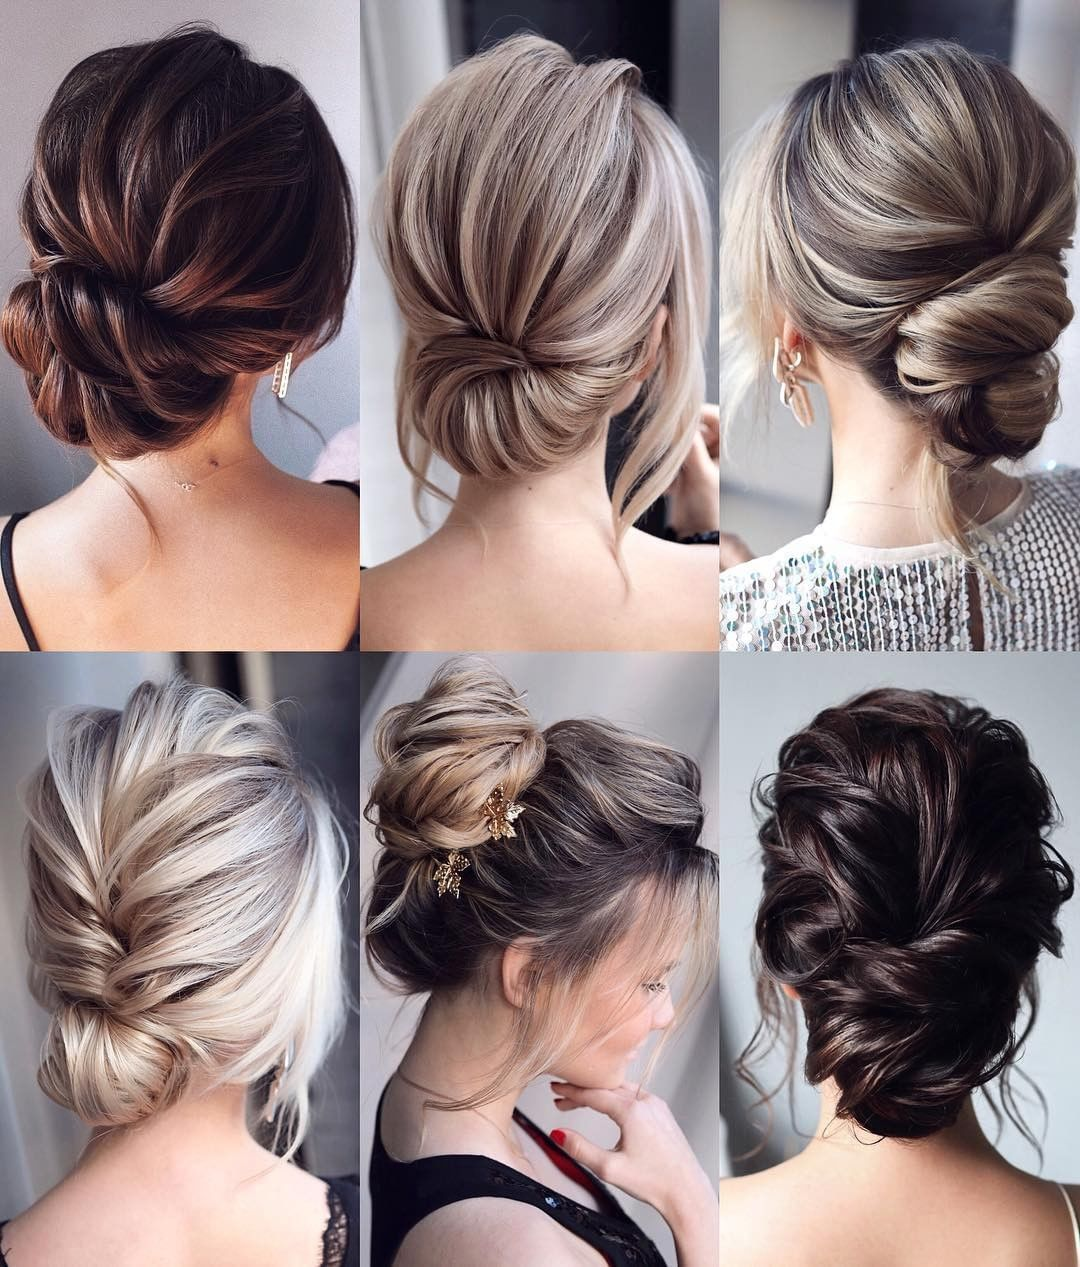 New The 10 Best Easy Hairstyles In The World Easy Hairstyle For Medium Hair For School Quick Medium Hair Styles Medium Length Hair Styles Easy Hairstyles